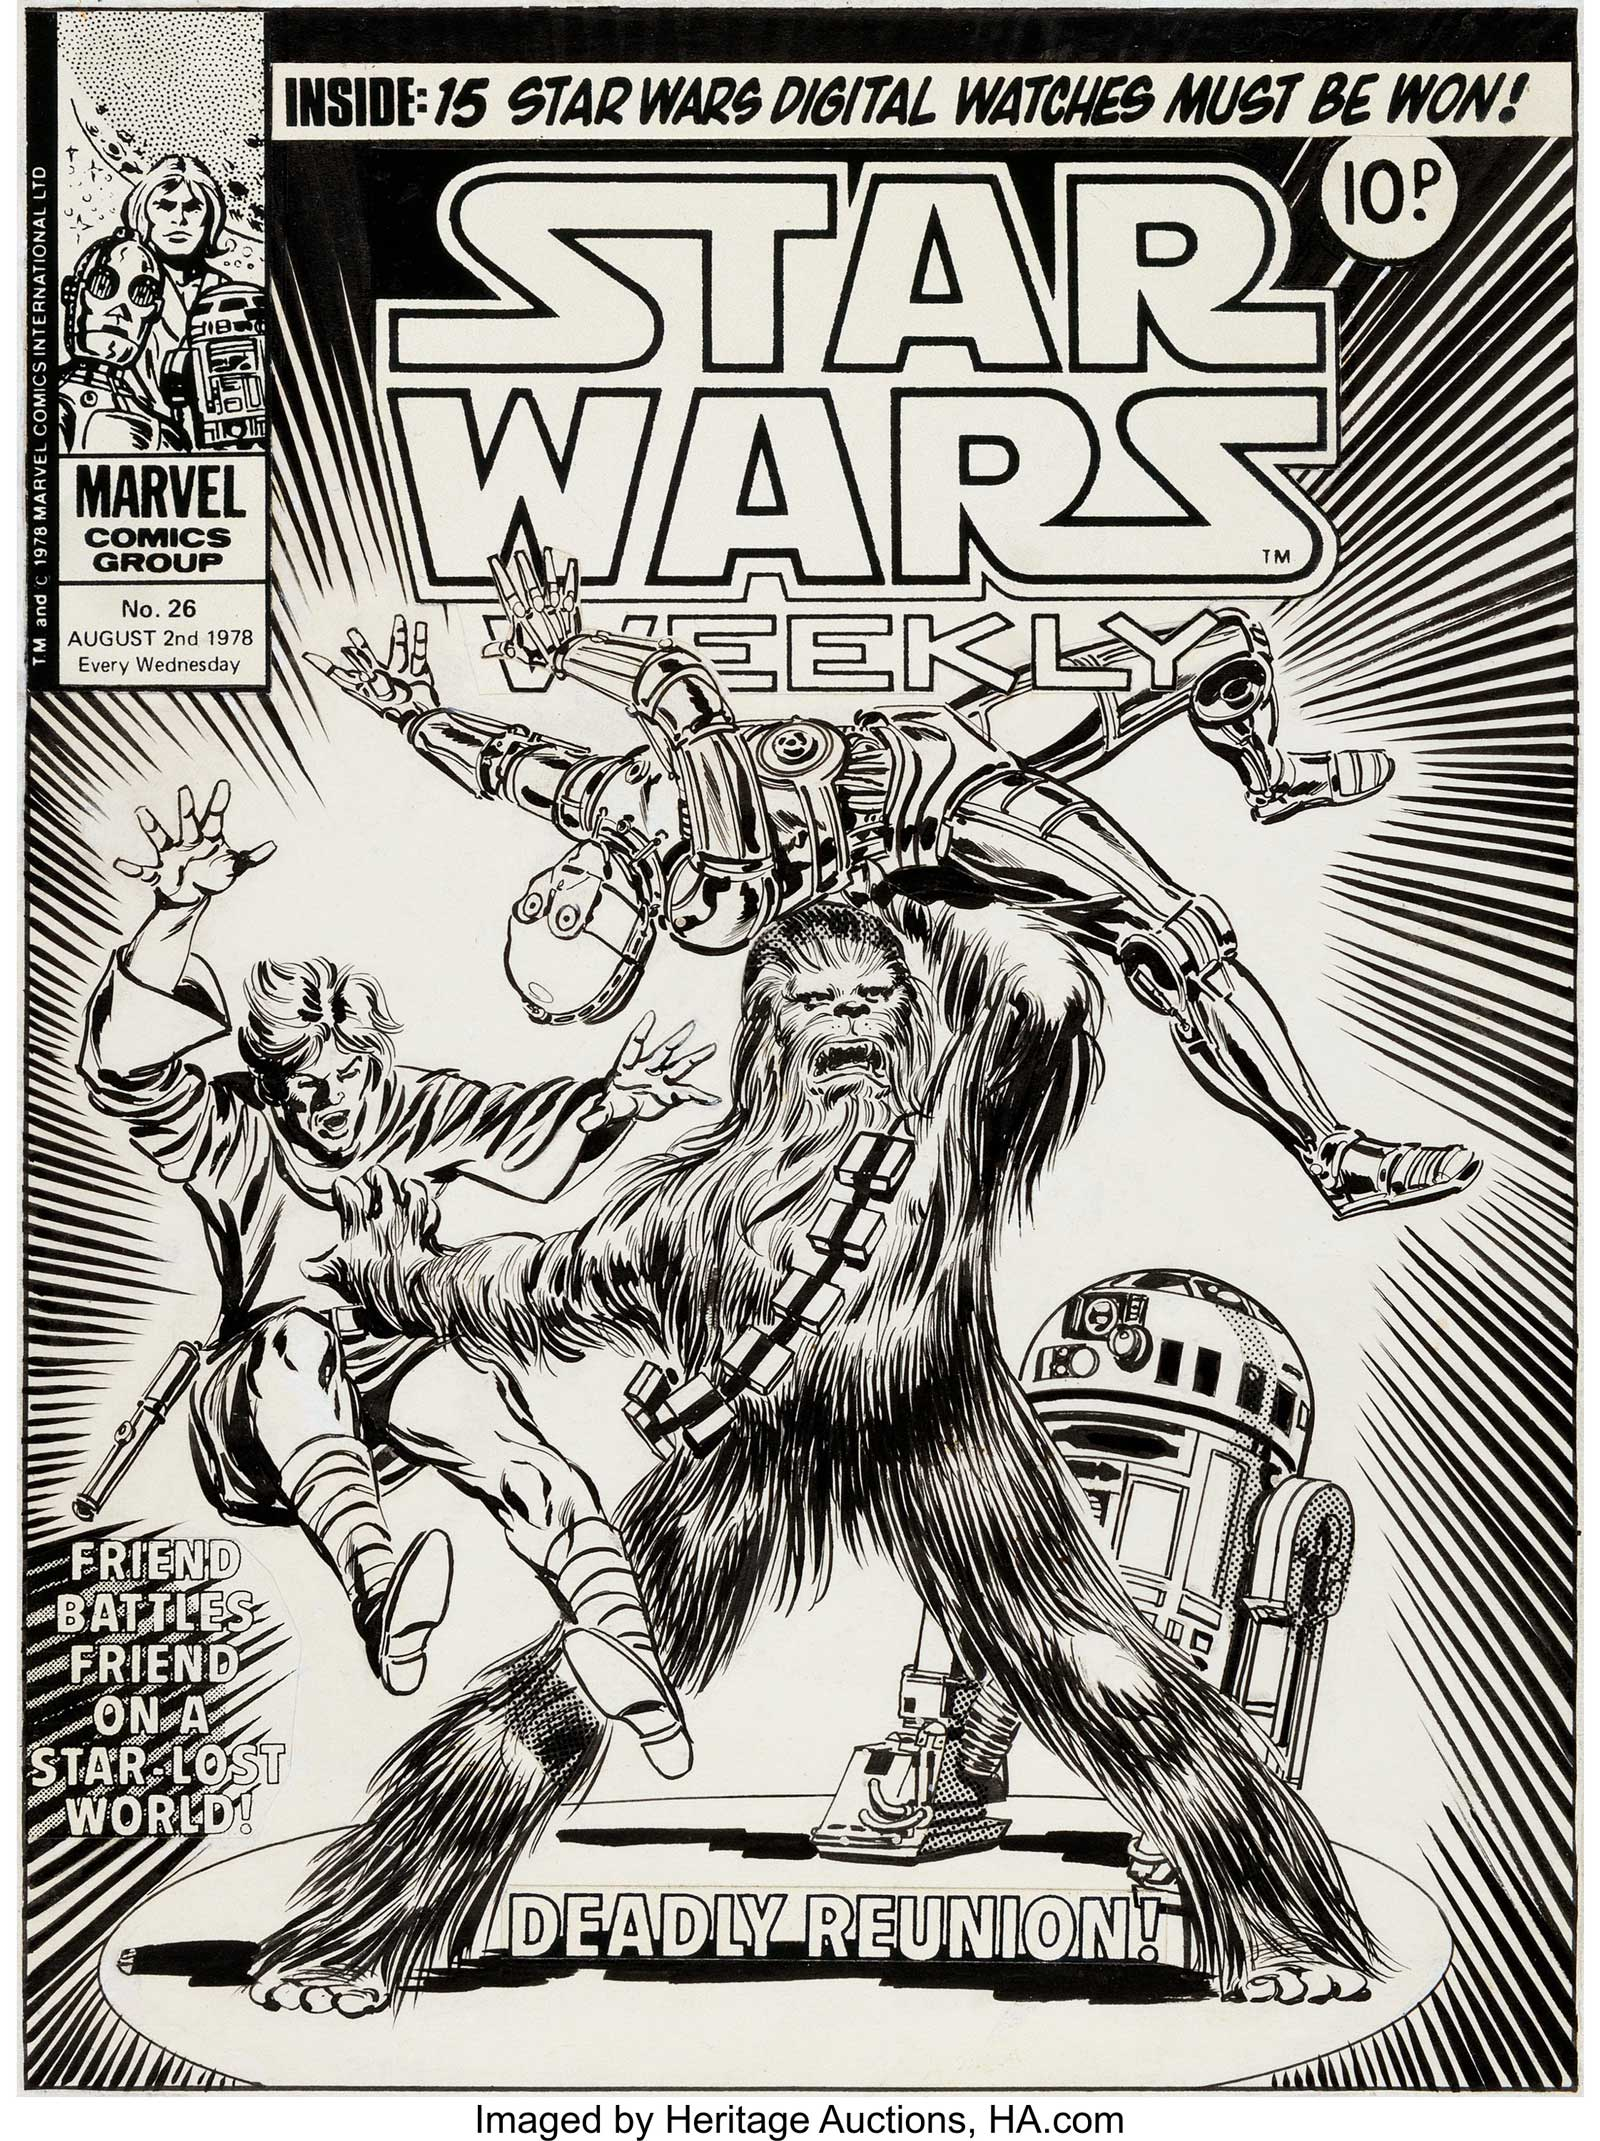 Tom Palmer's original cover art for  Star Wars Weekly Issue 26